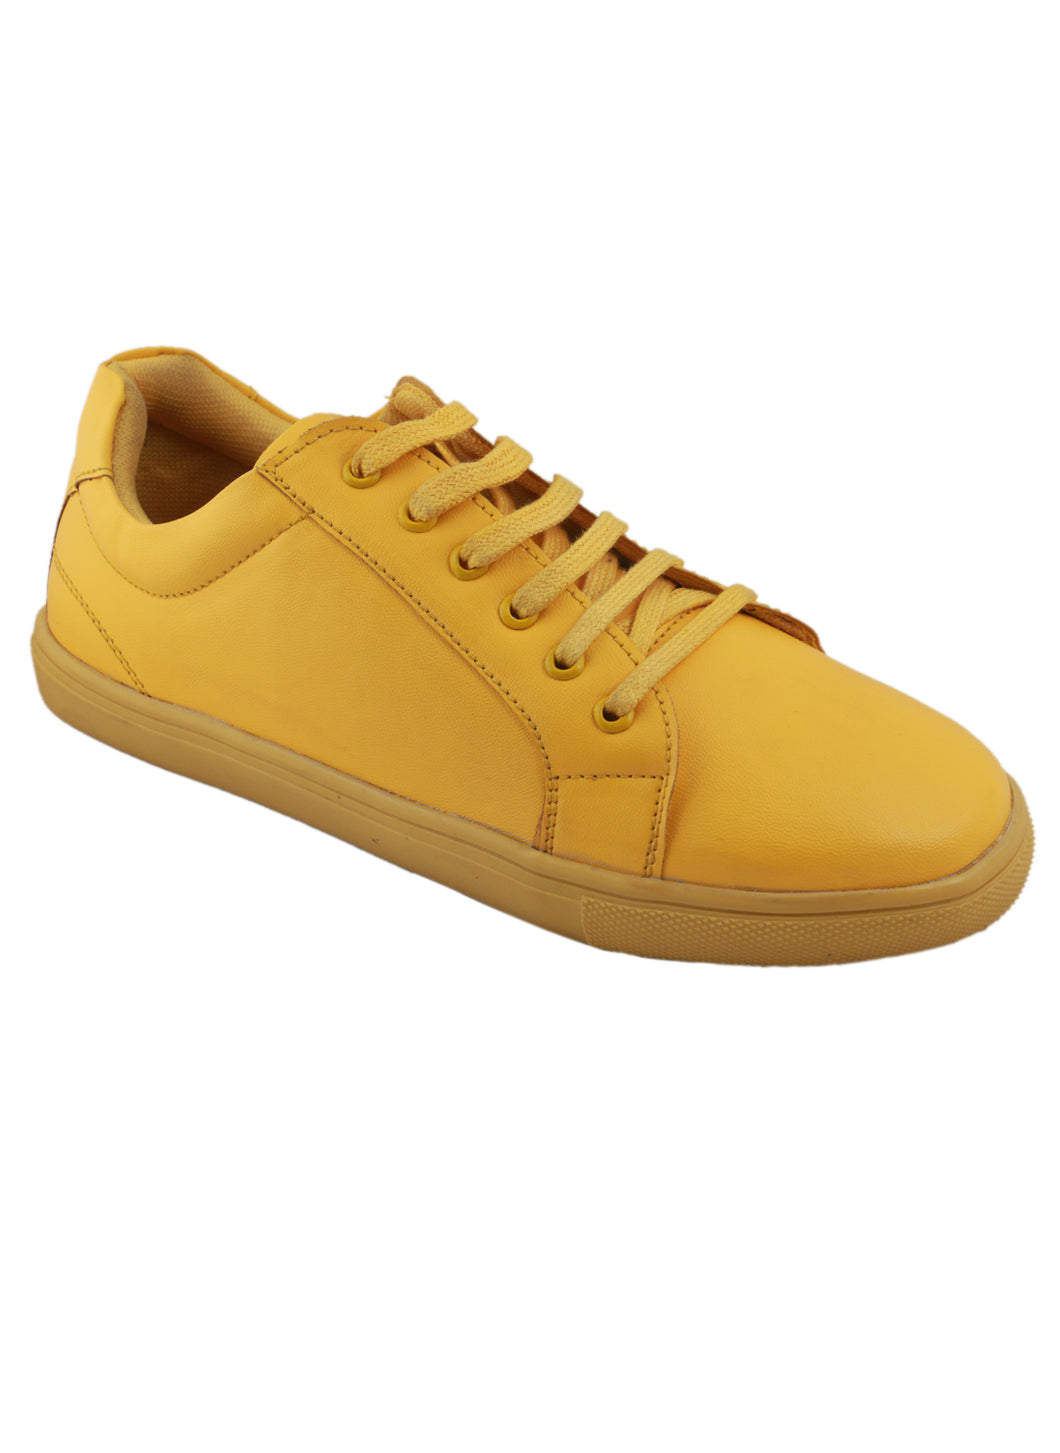 Yellow one tone neon sneakers